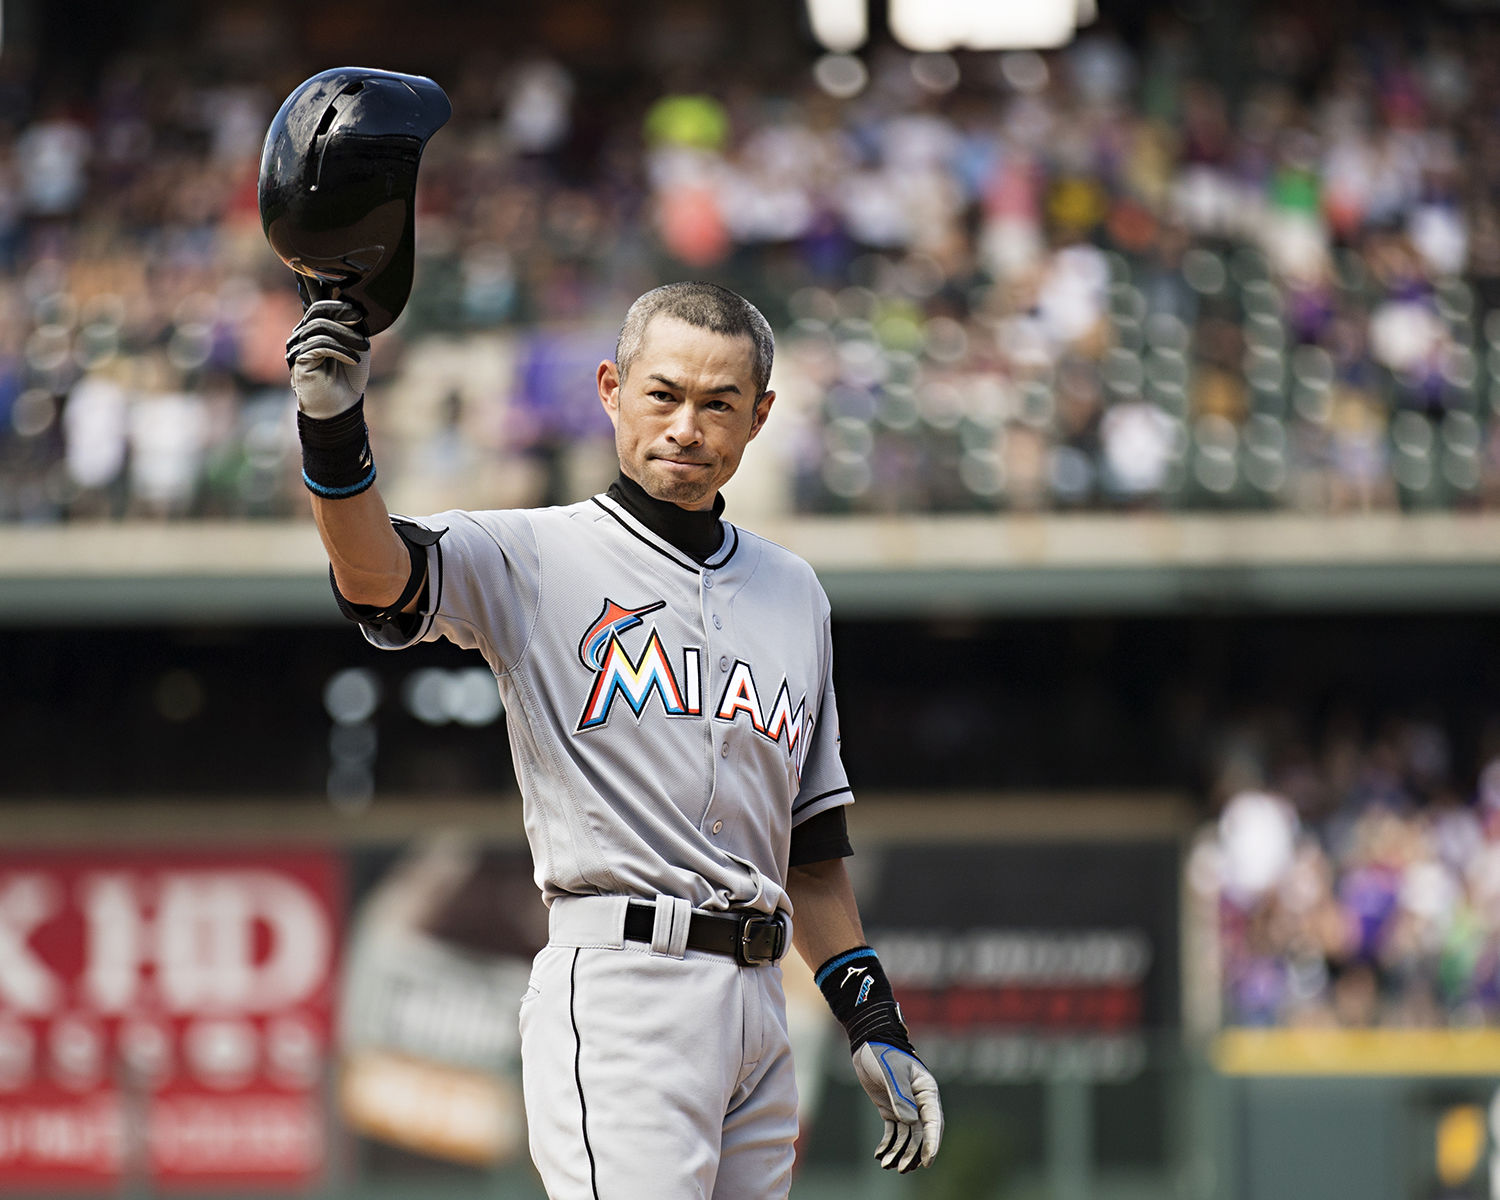 Ichiro's legacy preserved forever in Cooperstown | Baseball Hall of